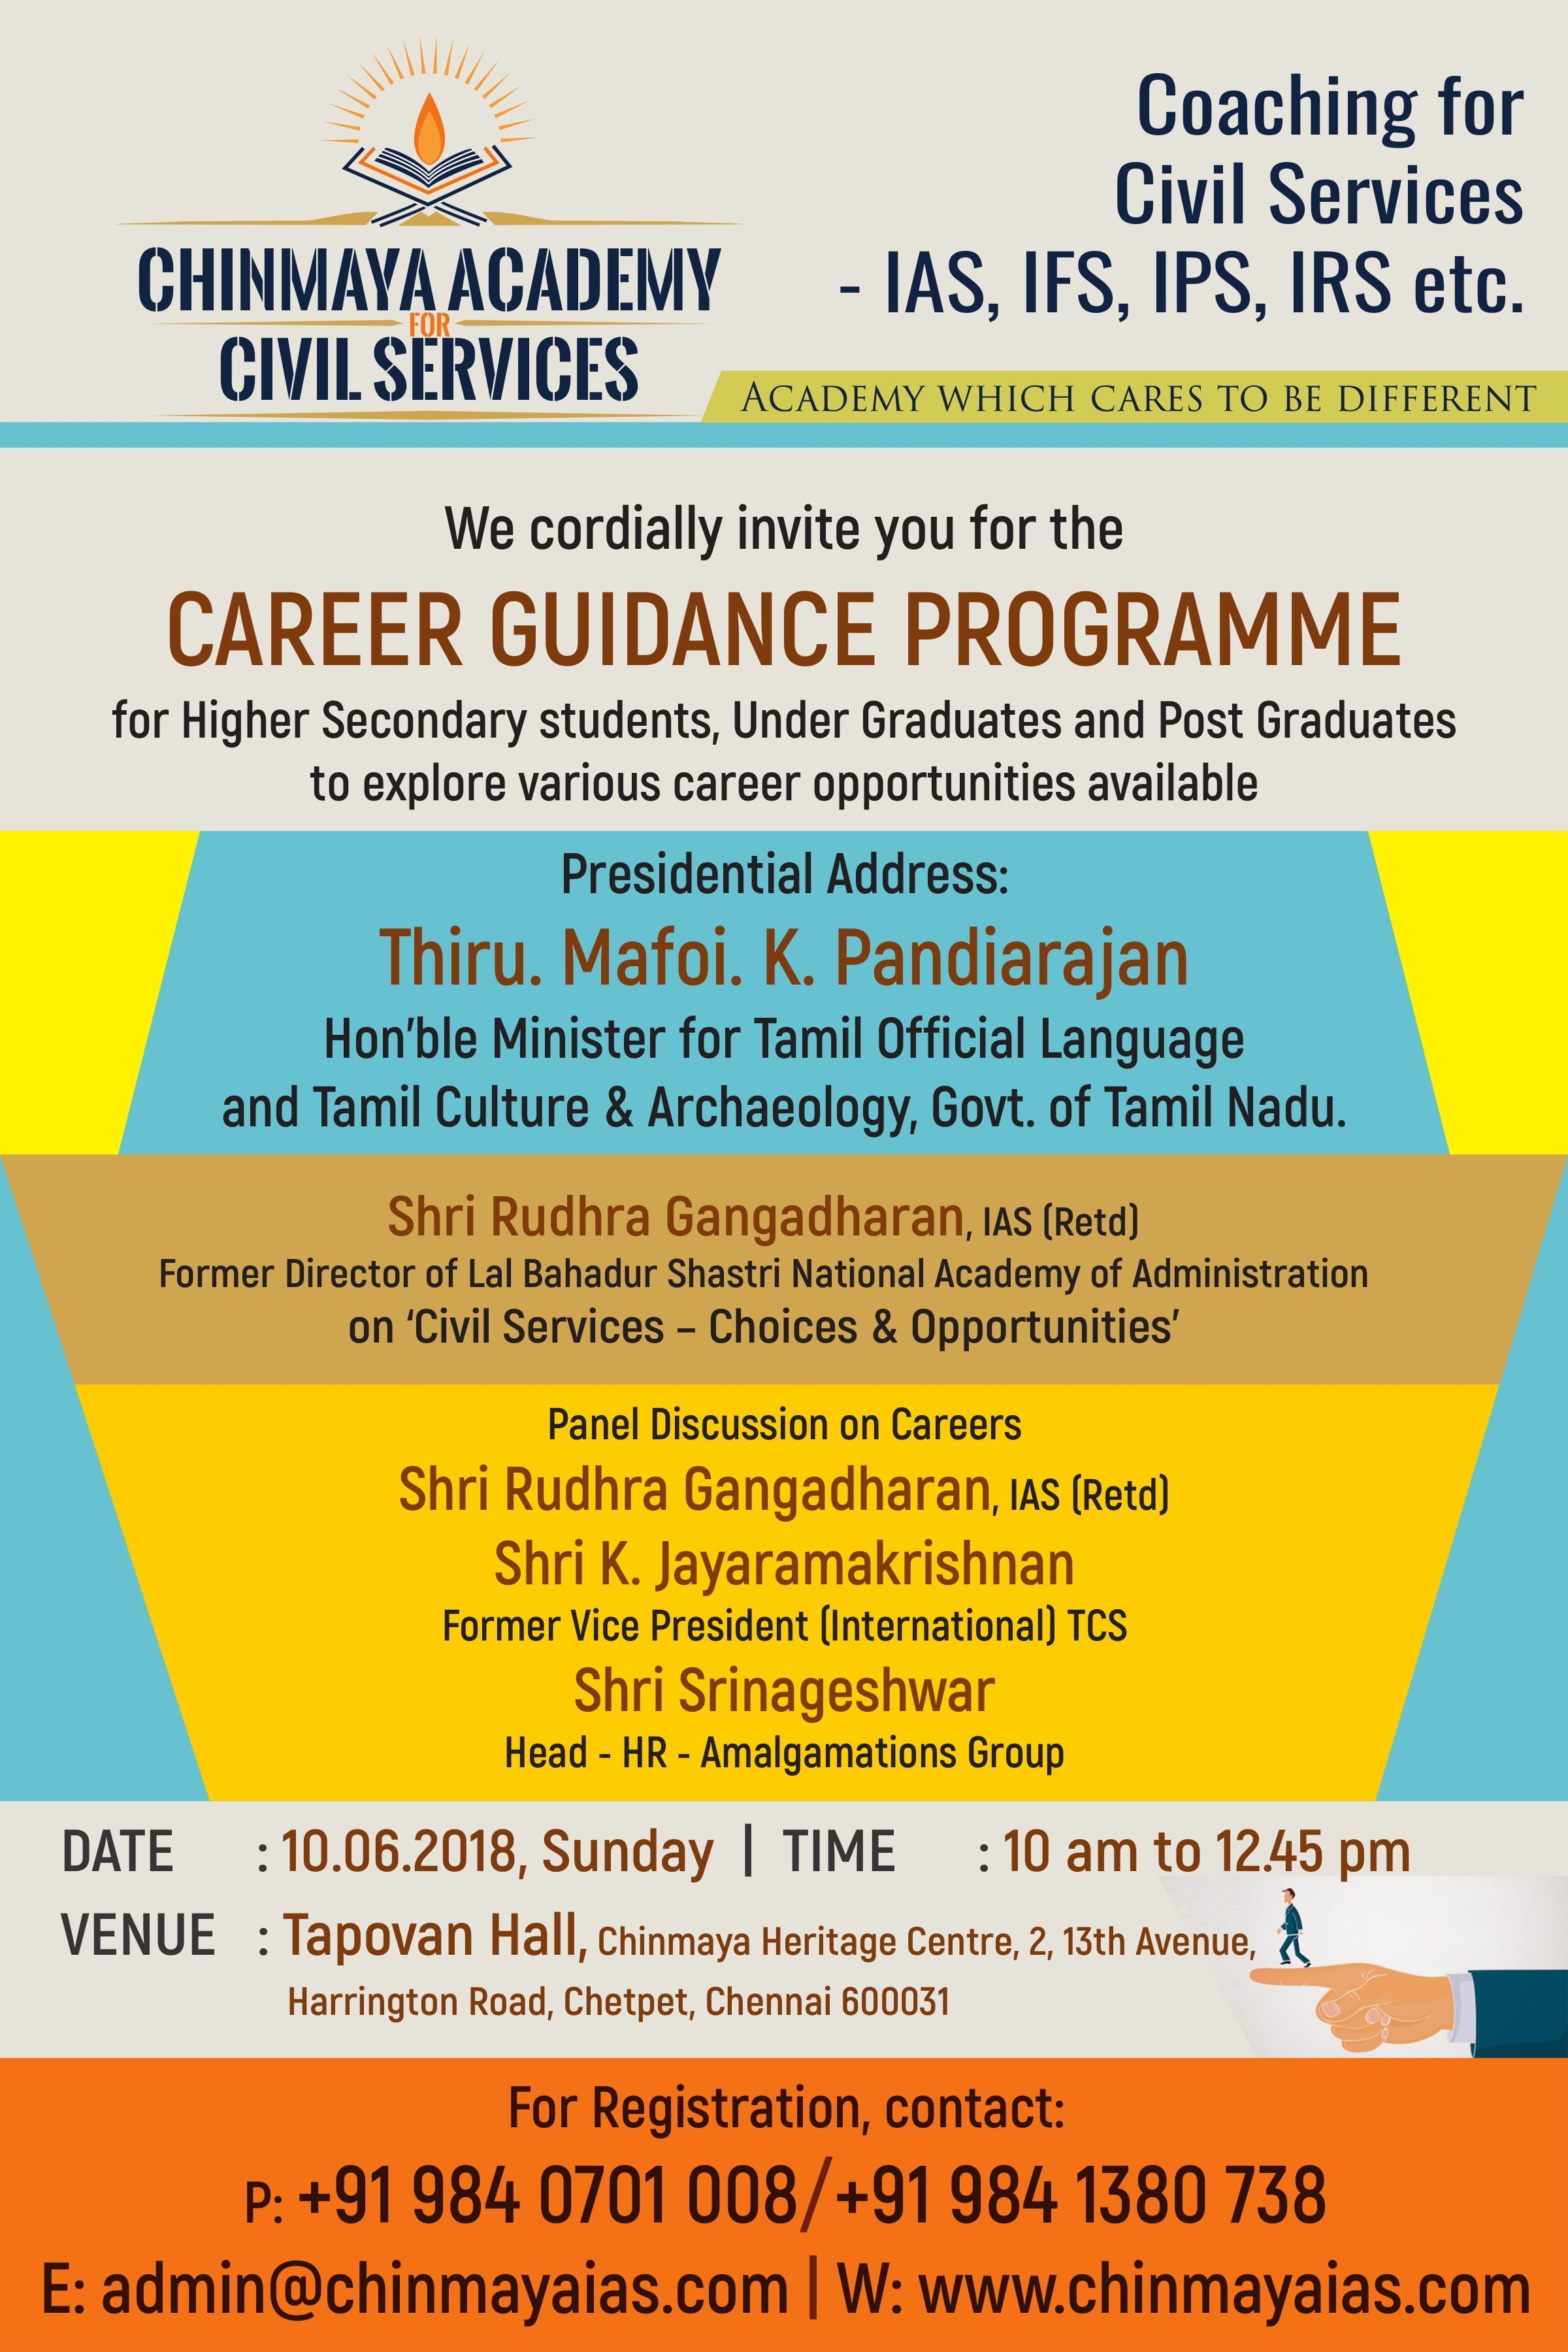 Poster for Career guidance programme conducted by Chinmaya Academy for Civil Services